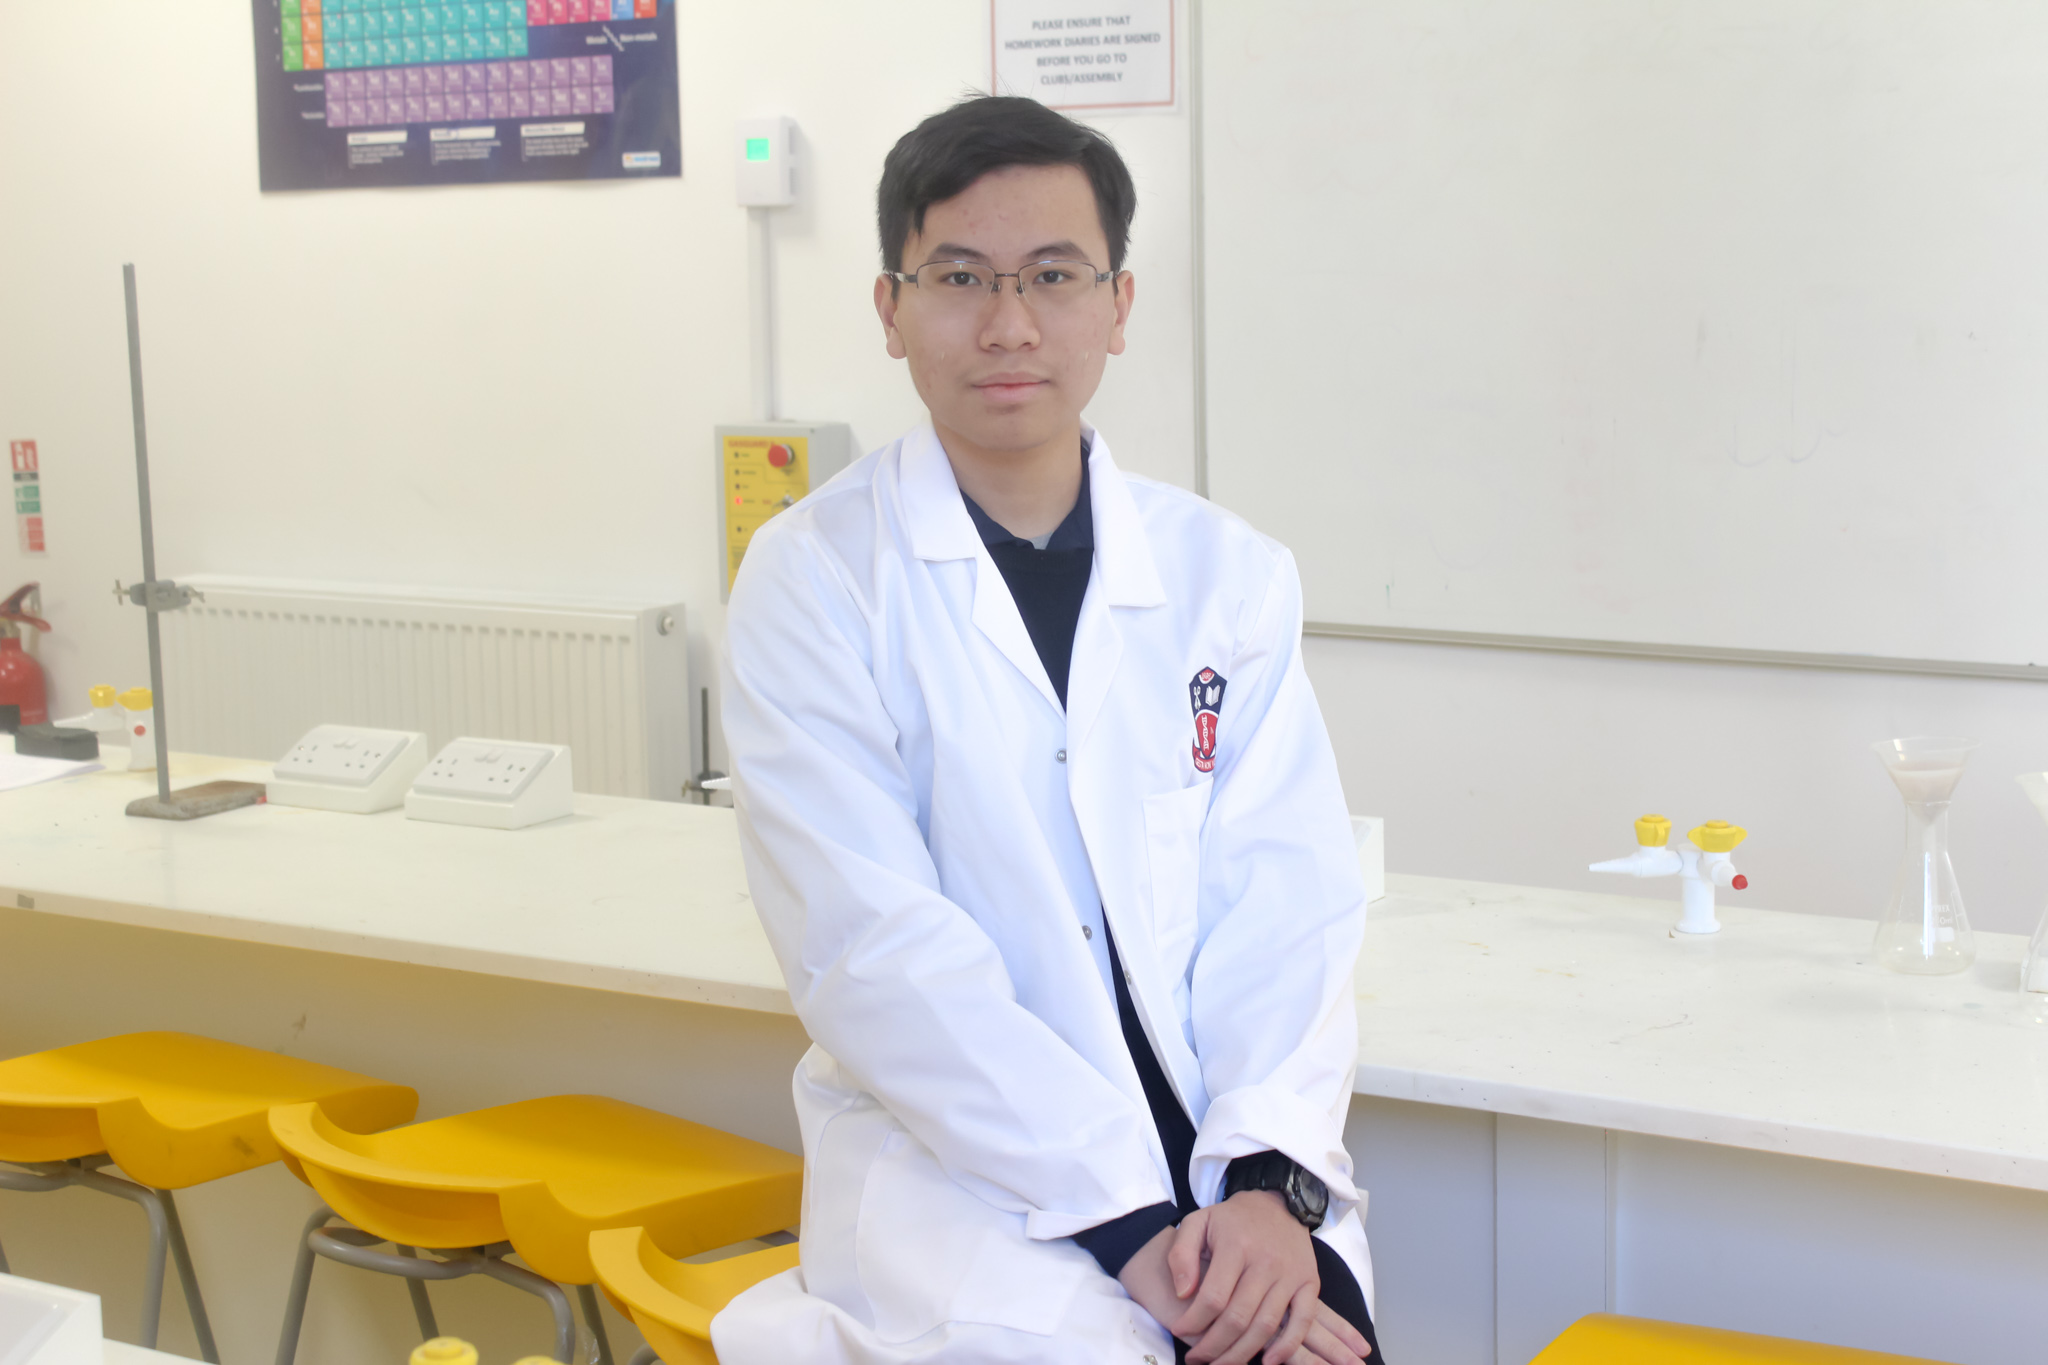 Cardiff student amongst top students in International Biology Olympiad